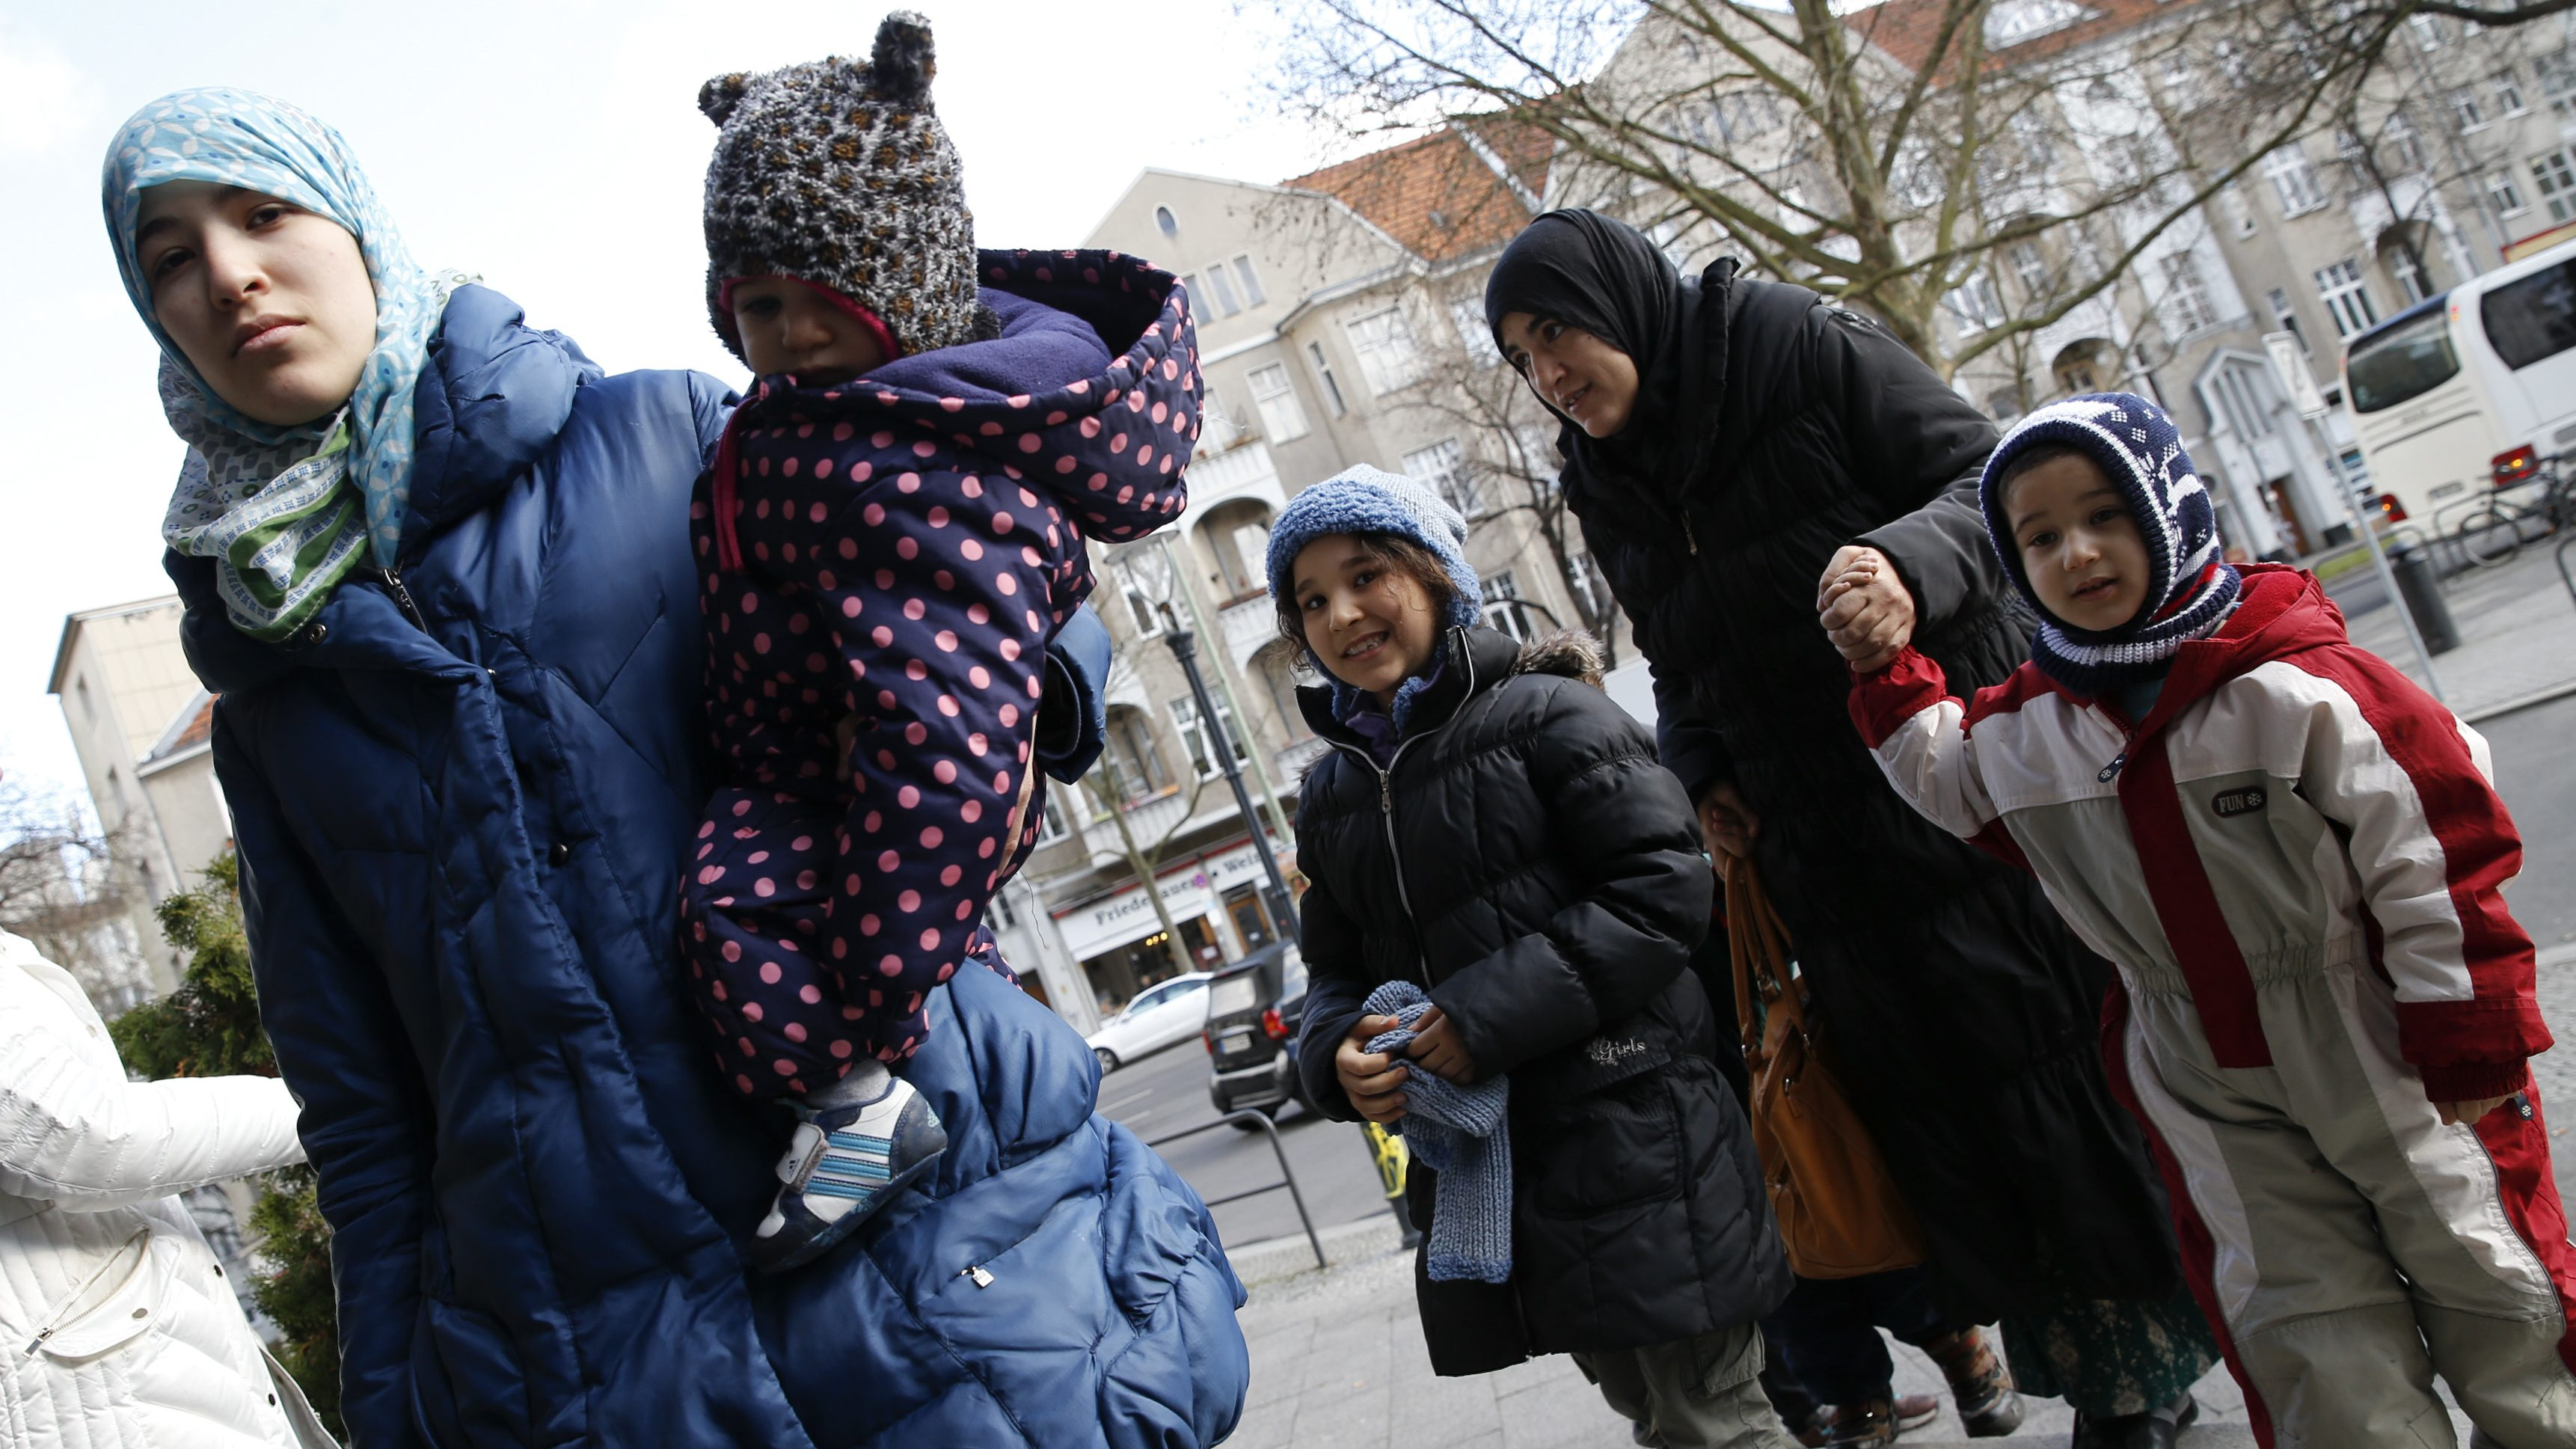 Migrants arrive at a refugee shelter in Berlin